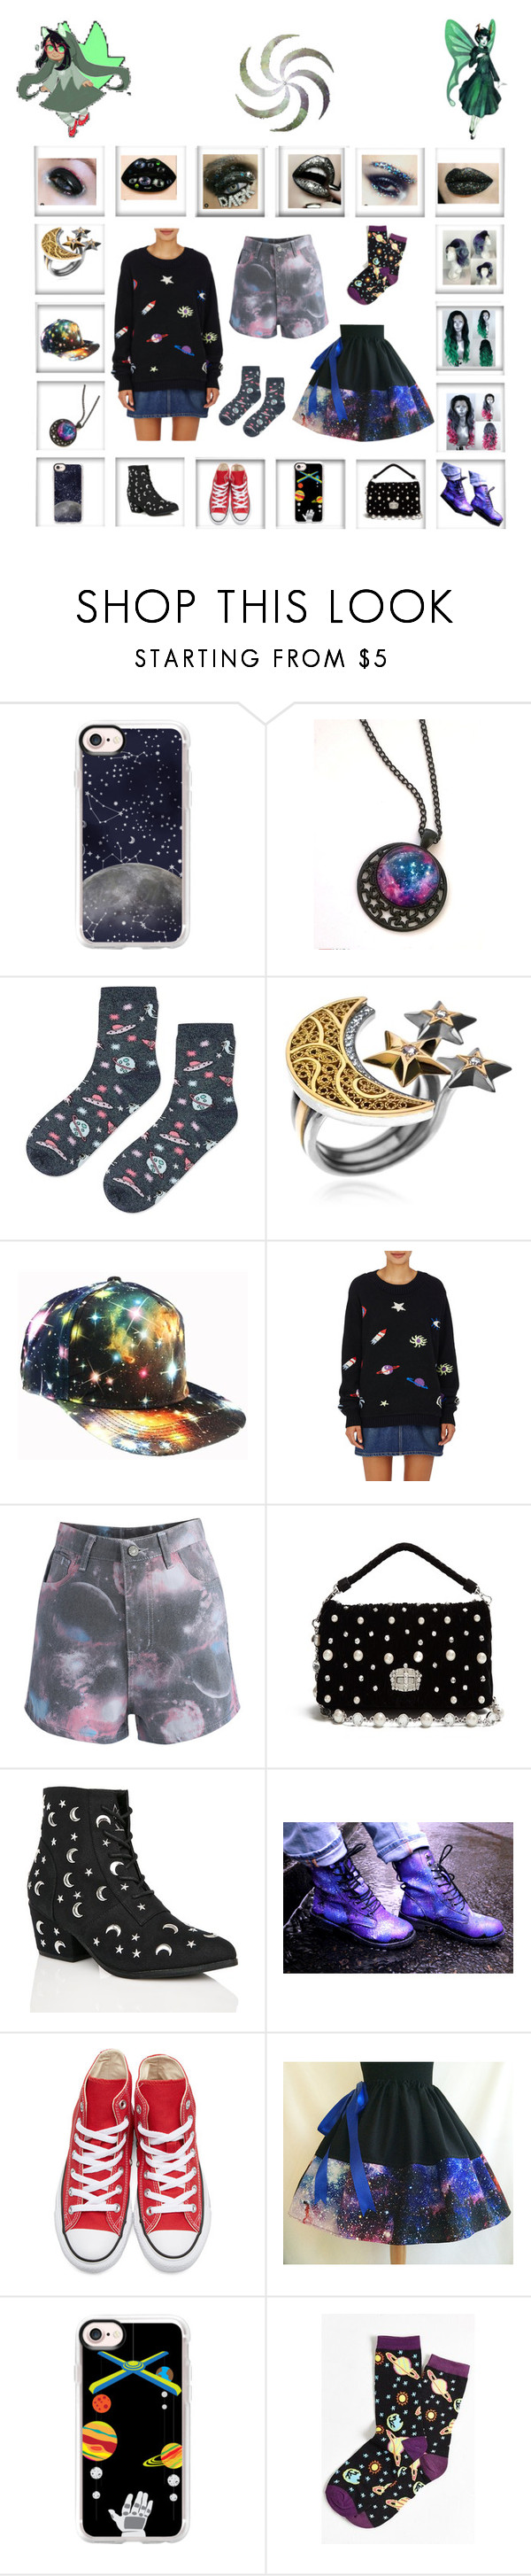 """""""Hero of space"""" by odscene ❤ liked on Polyvore featuring Casetify, Topshop, AZZA FAHMY, The Elder Statesman, Chicwish, Miu Miu, Y.R.U., Converse and Neon Moon"""